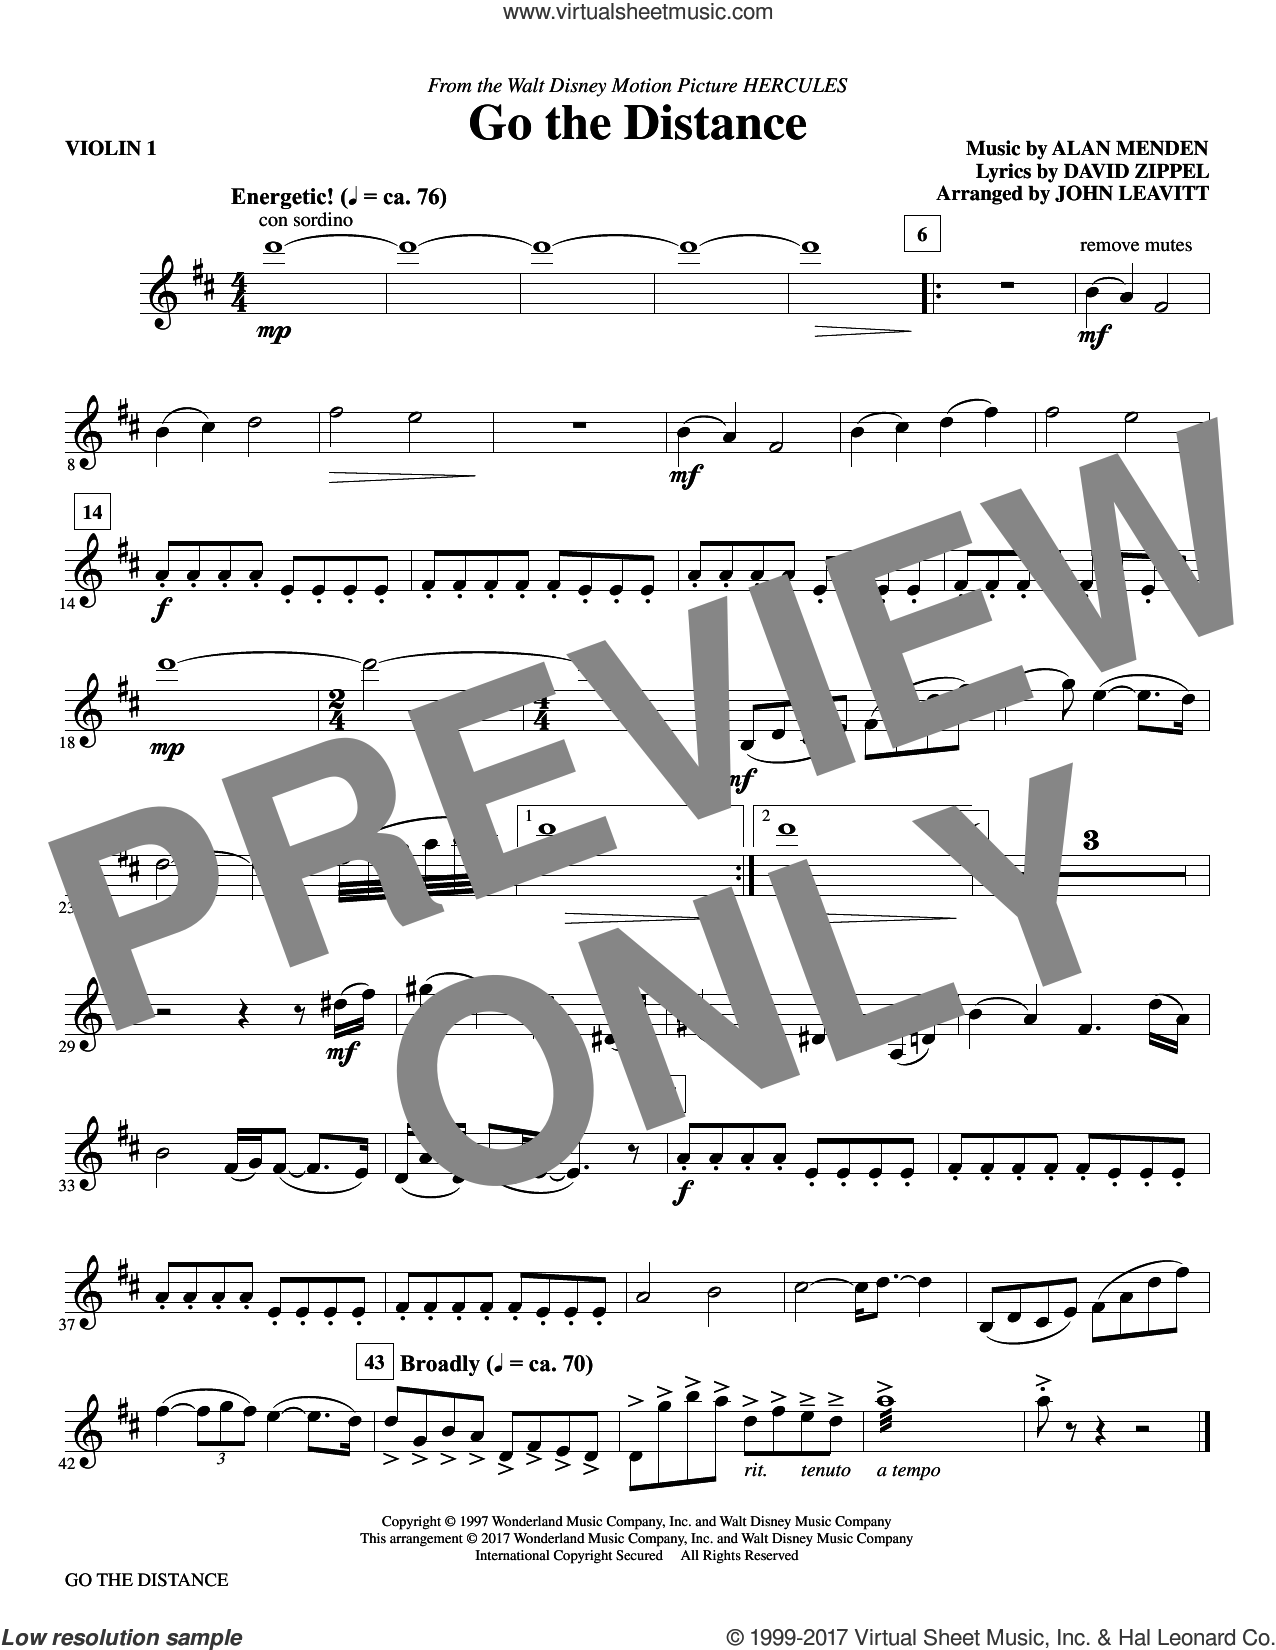 Go the Distance (complete set of parts) sheet music for orchestra/band by Alan Menken, David Zippel, John Leavitt and Michael Bolton, intermediate skill level